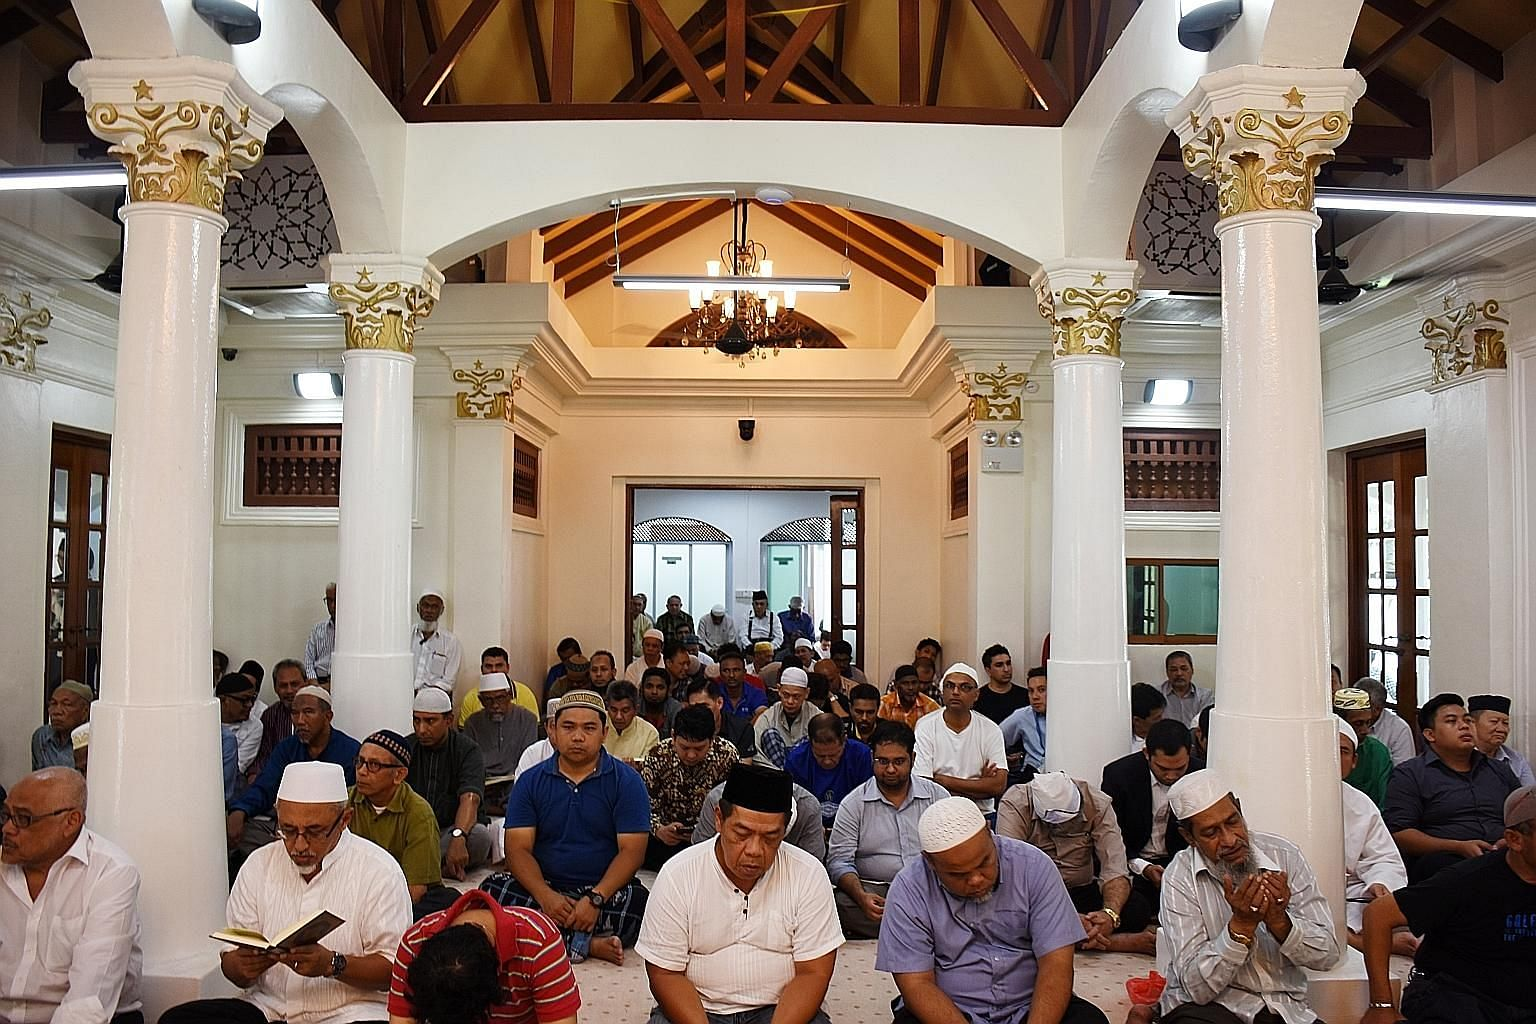 Congregants at the first Friday prayer session at Haji Muhammad Salleh Mosque's prayer hall (top), which is now air-conditioned. The stairs (above) leading to the Habib Noh shrine were also retiled.